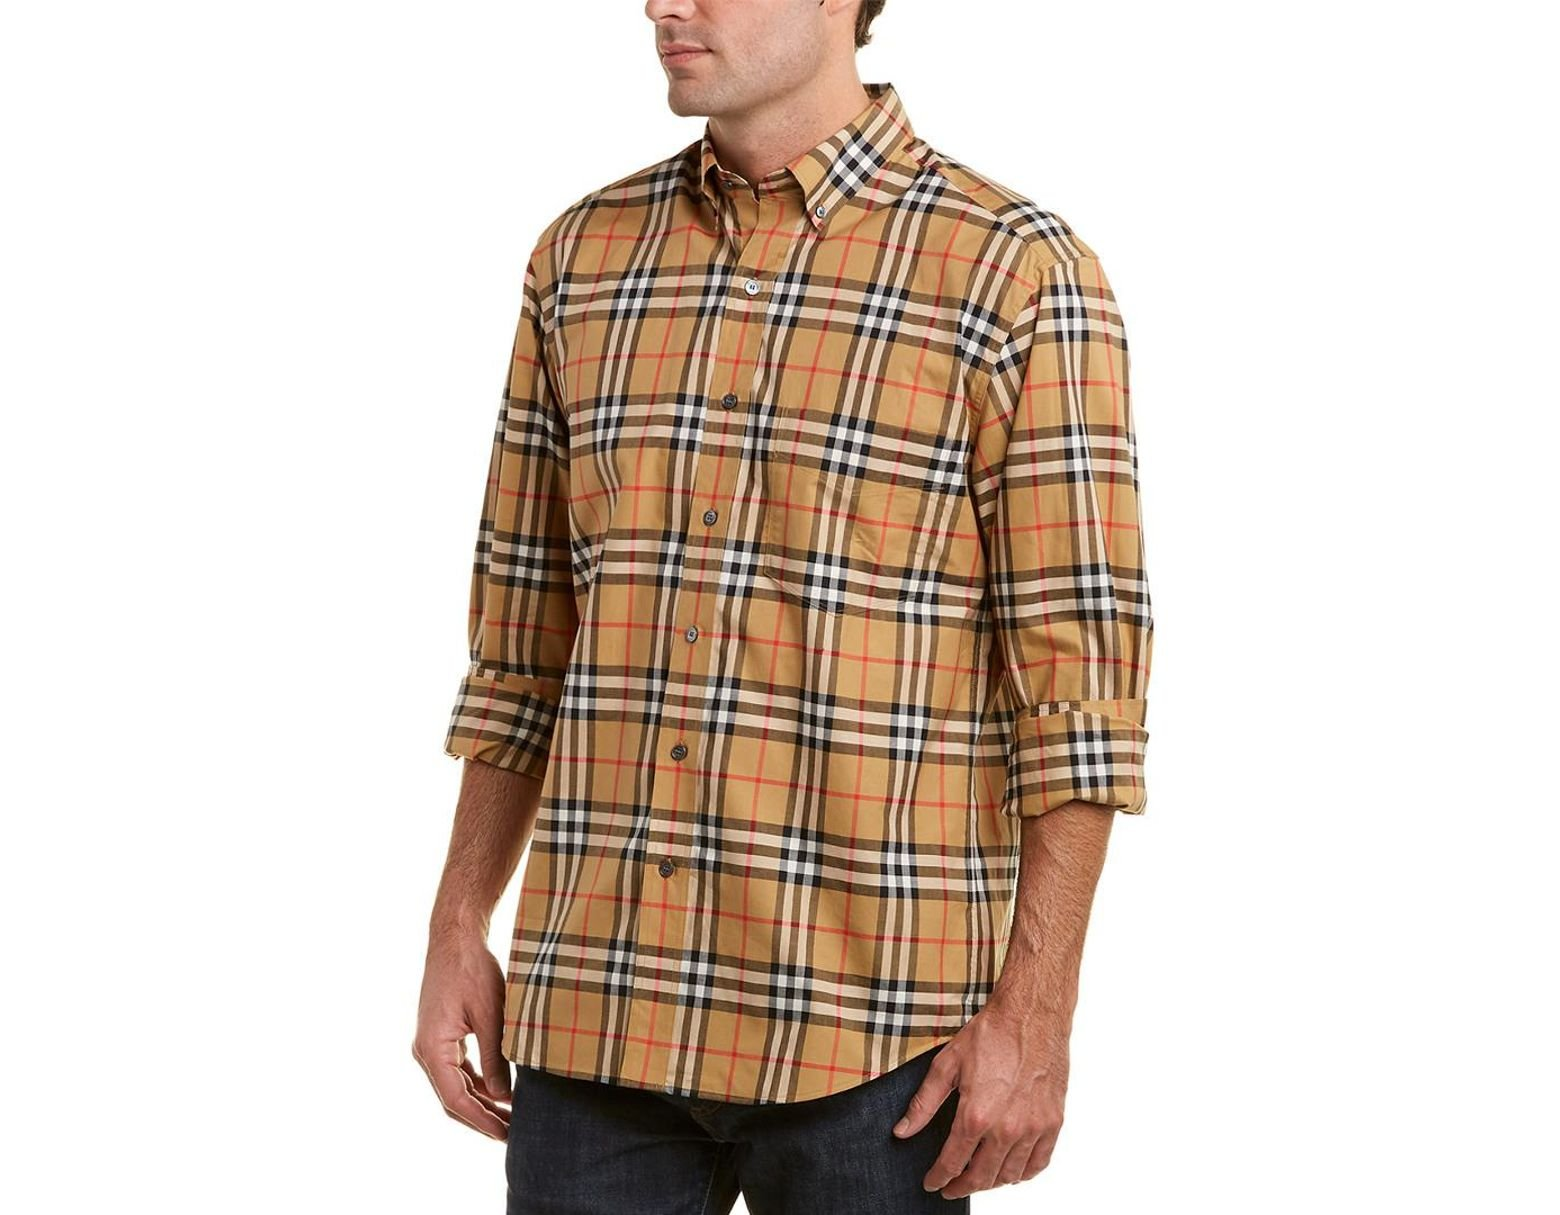 952e9ef0c Burberry Jameson Check Woven Shirt in Brown for Men - Lyst